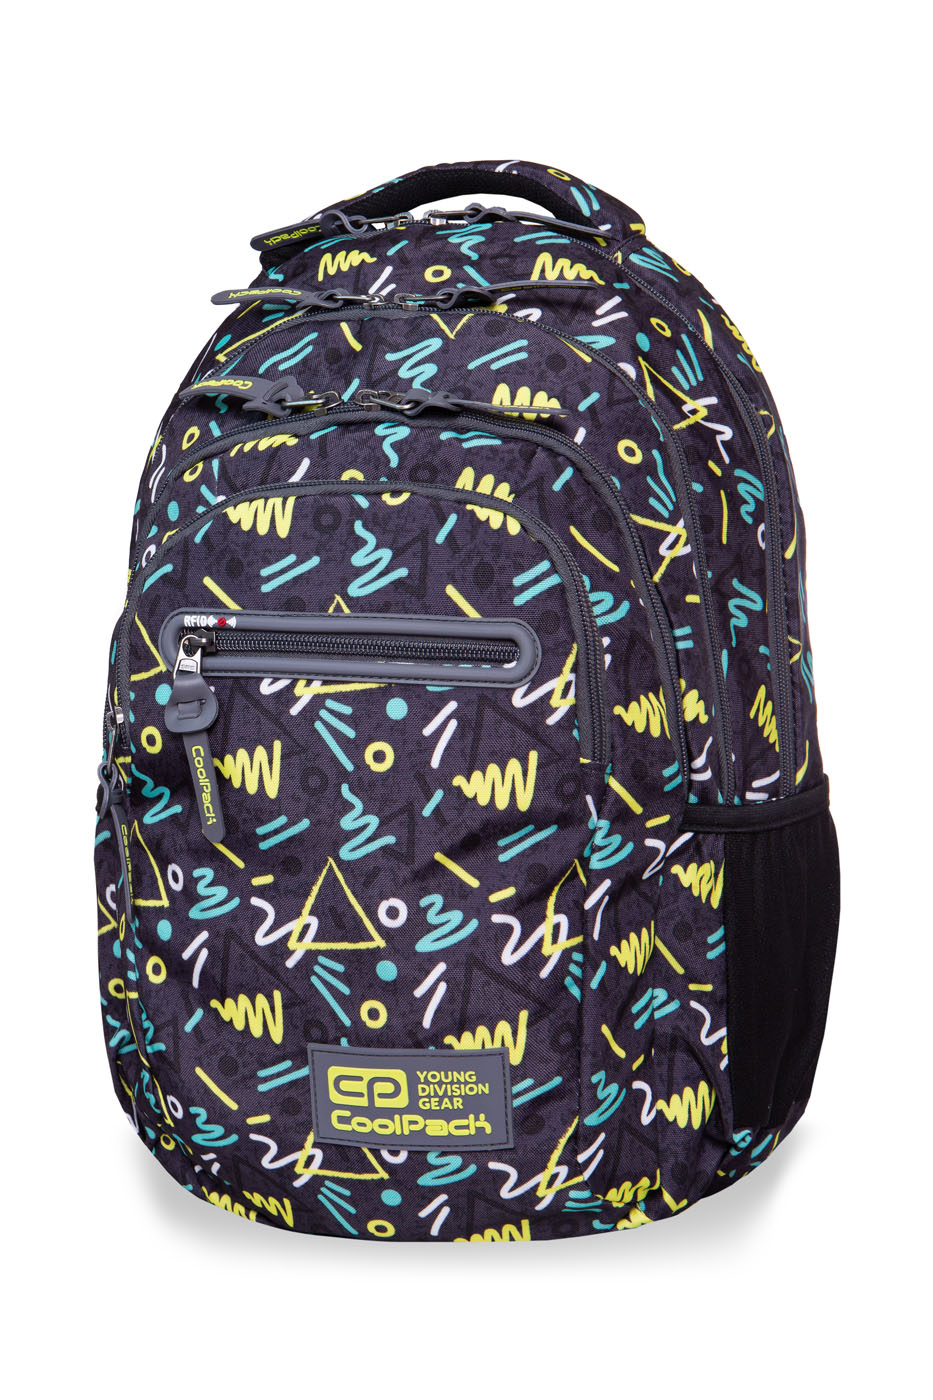 Coolpack - college tech - youth backpack - sketch